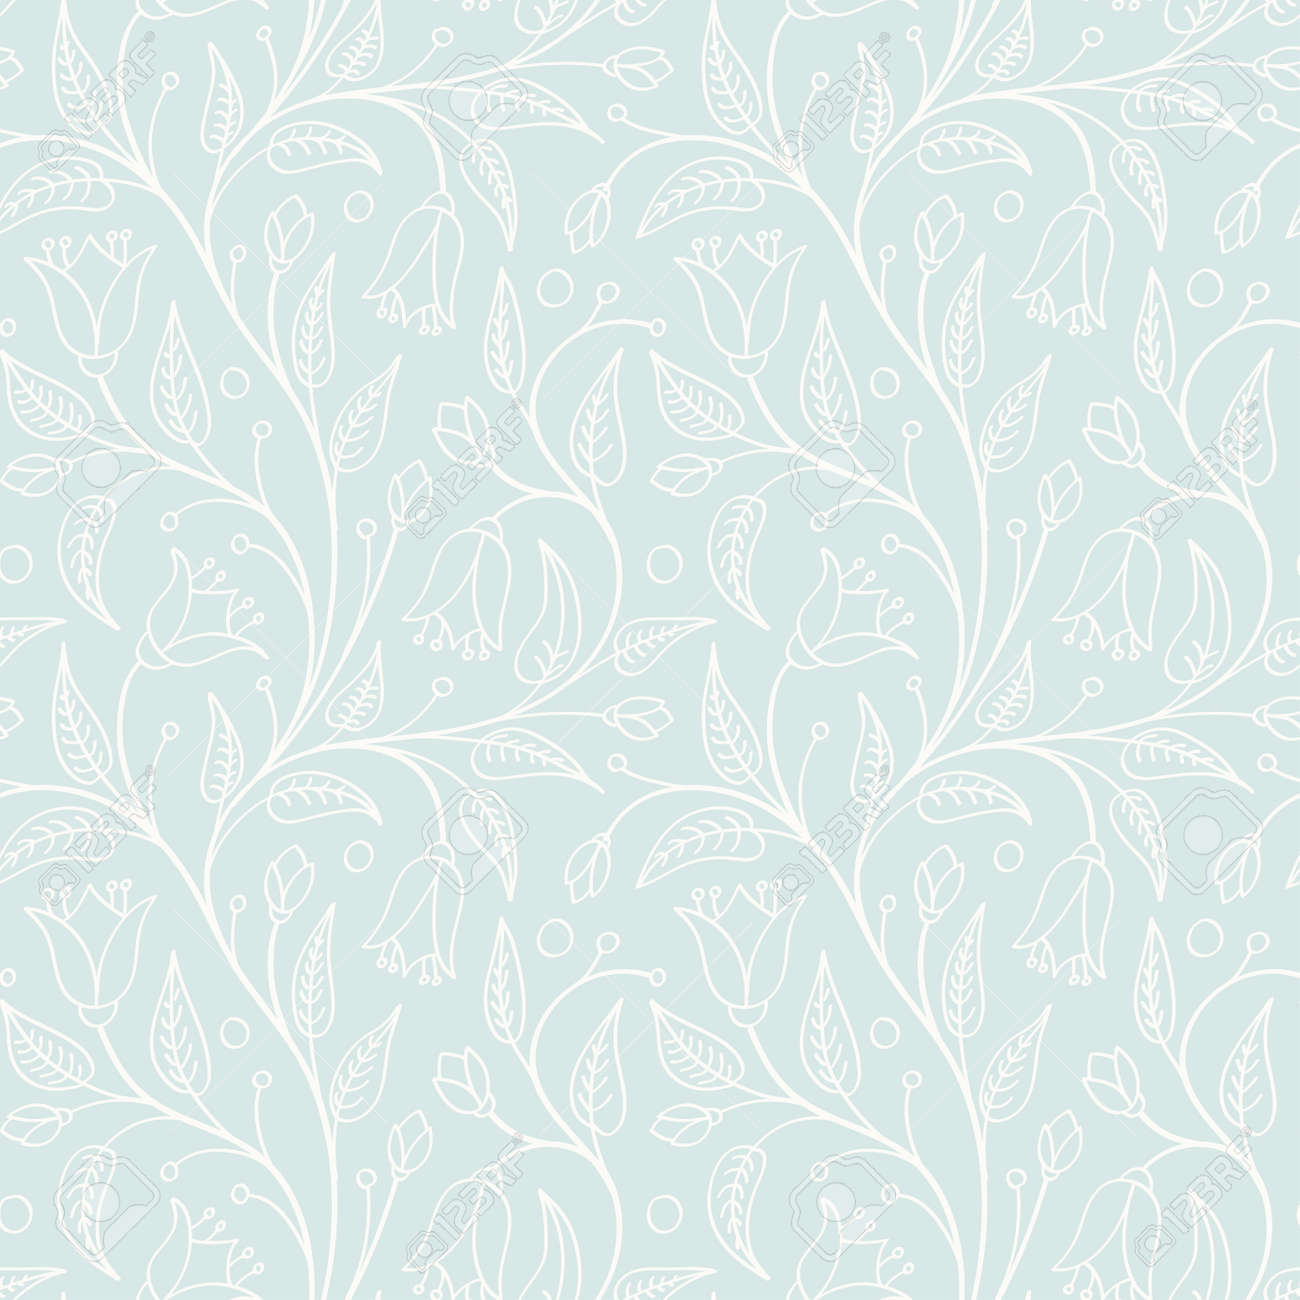 Seamless floral pattern in light retro colors For wallpaper, pattern fills,  web page background 3f1cb8ed844d